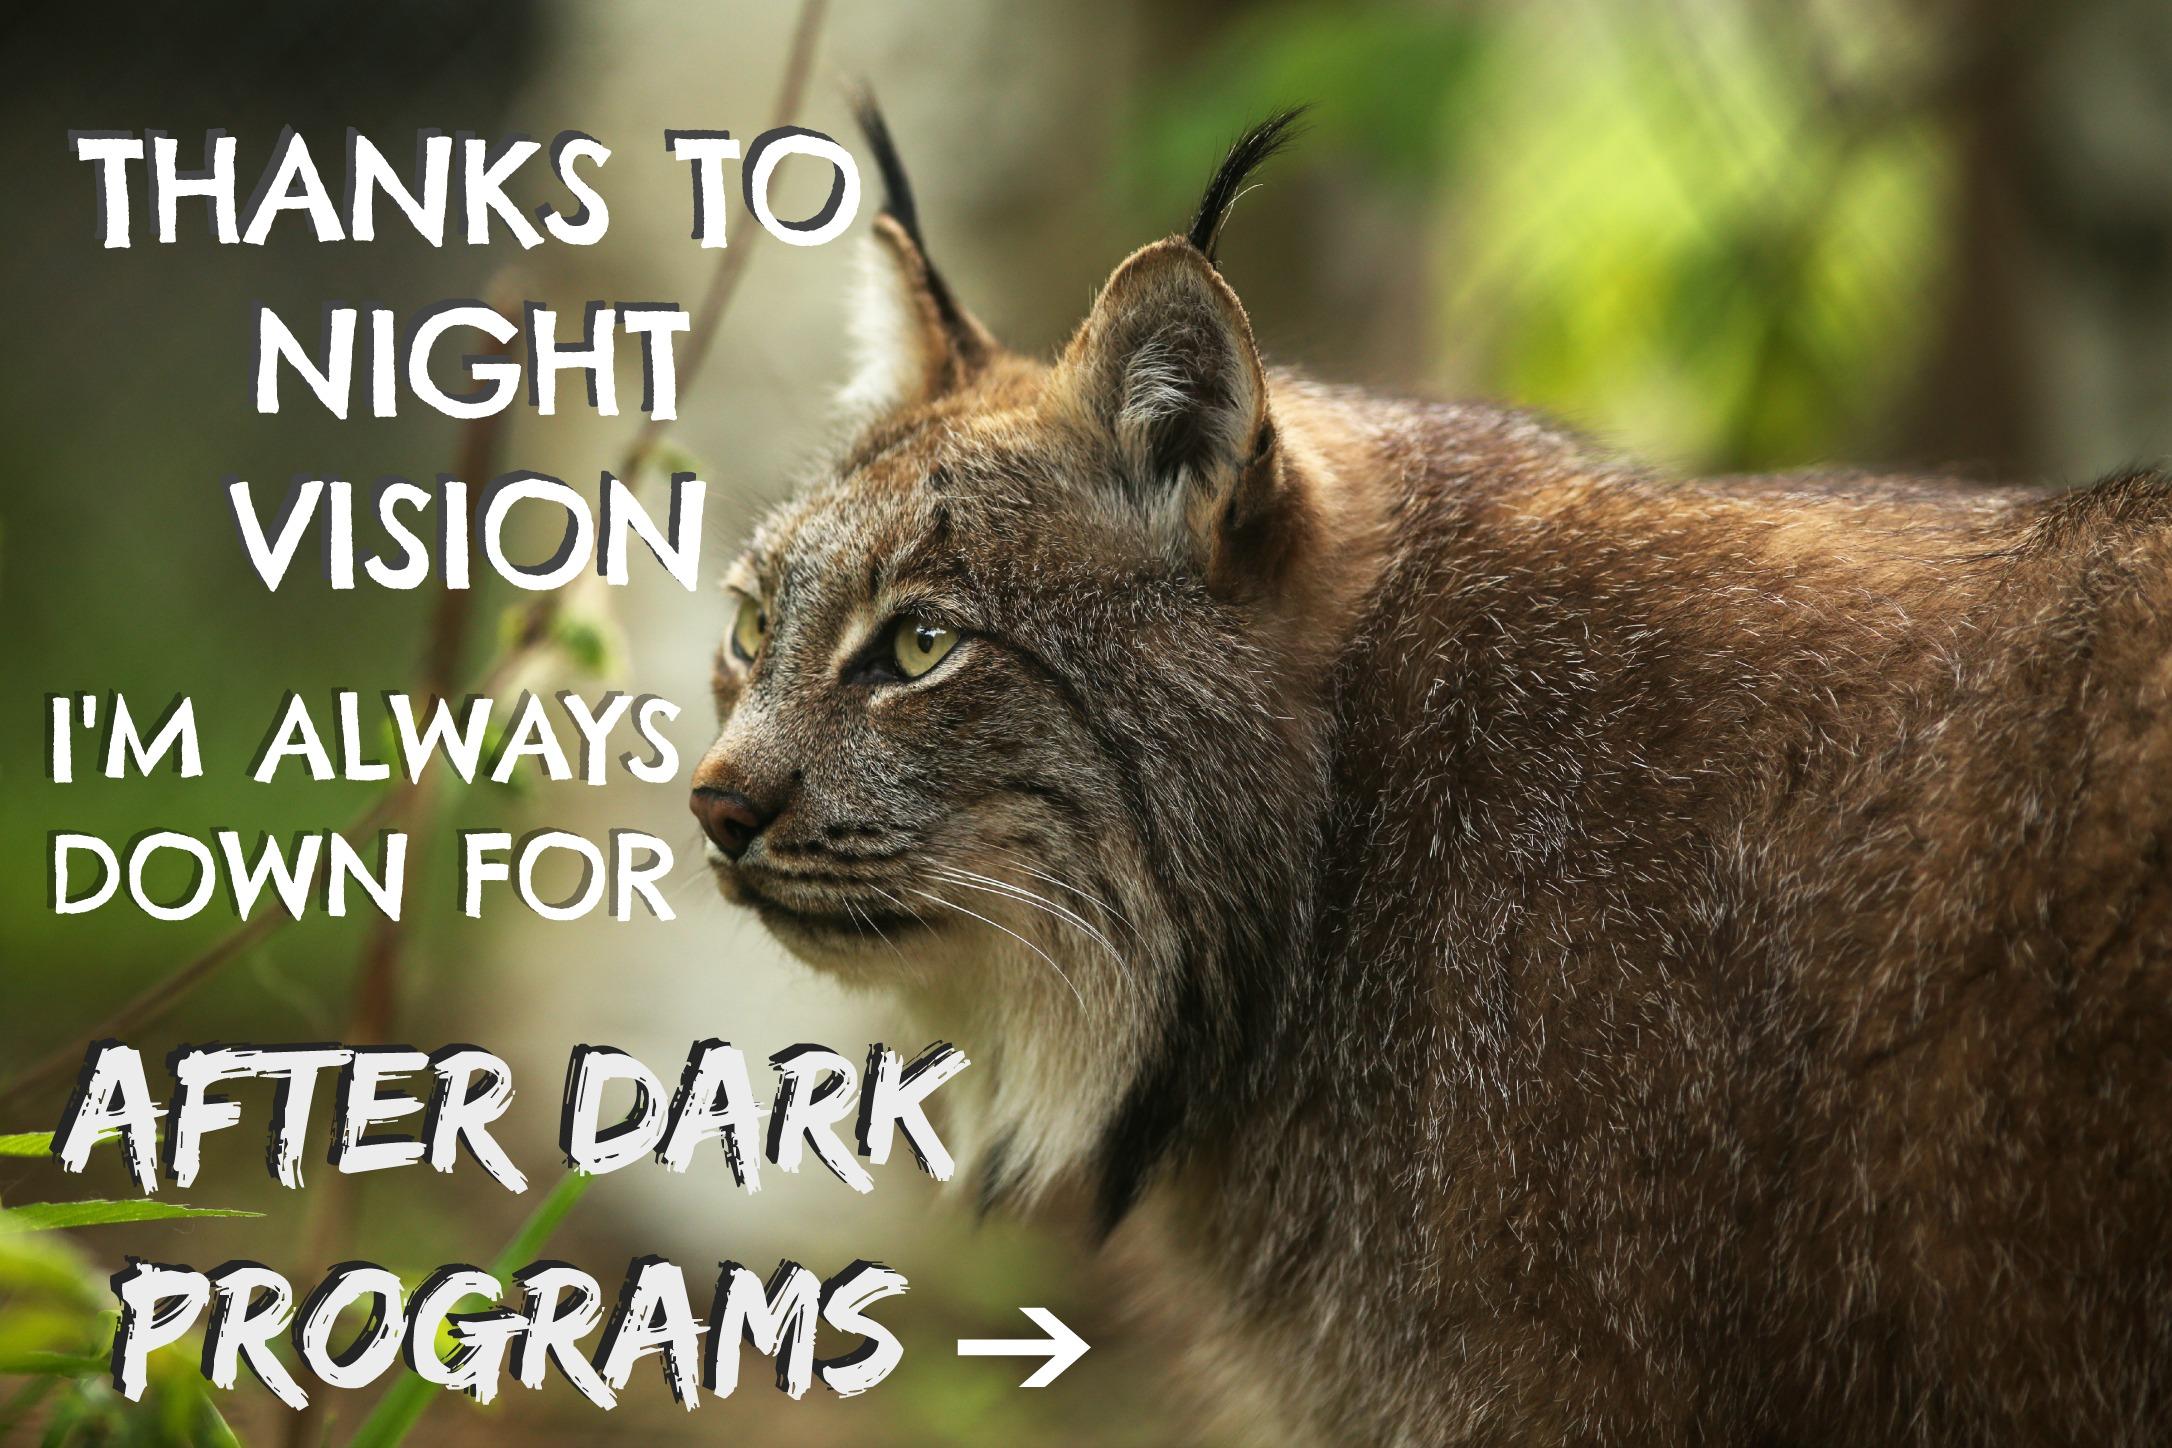 3-lynx-program-wsc-evening-24.jpg